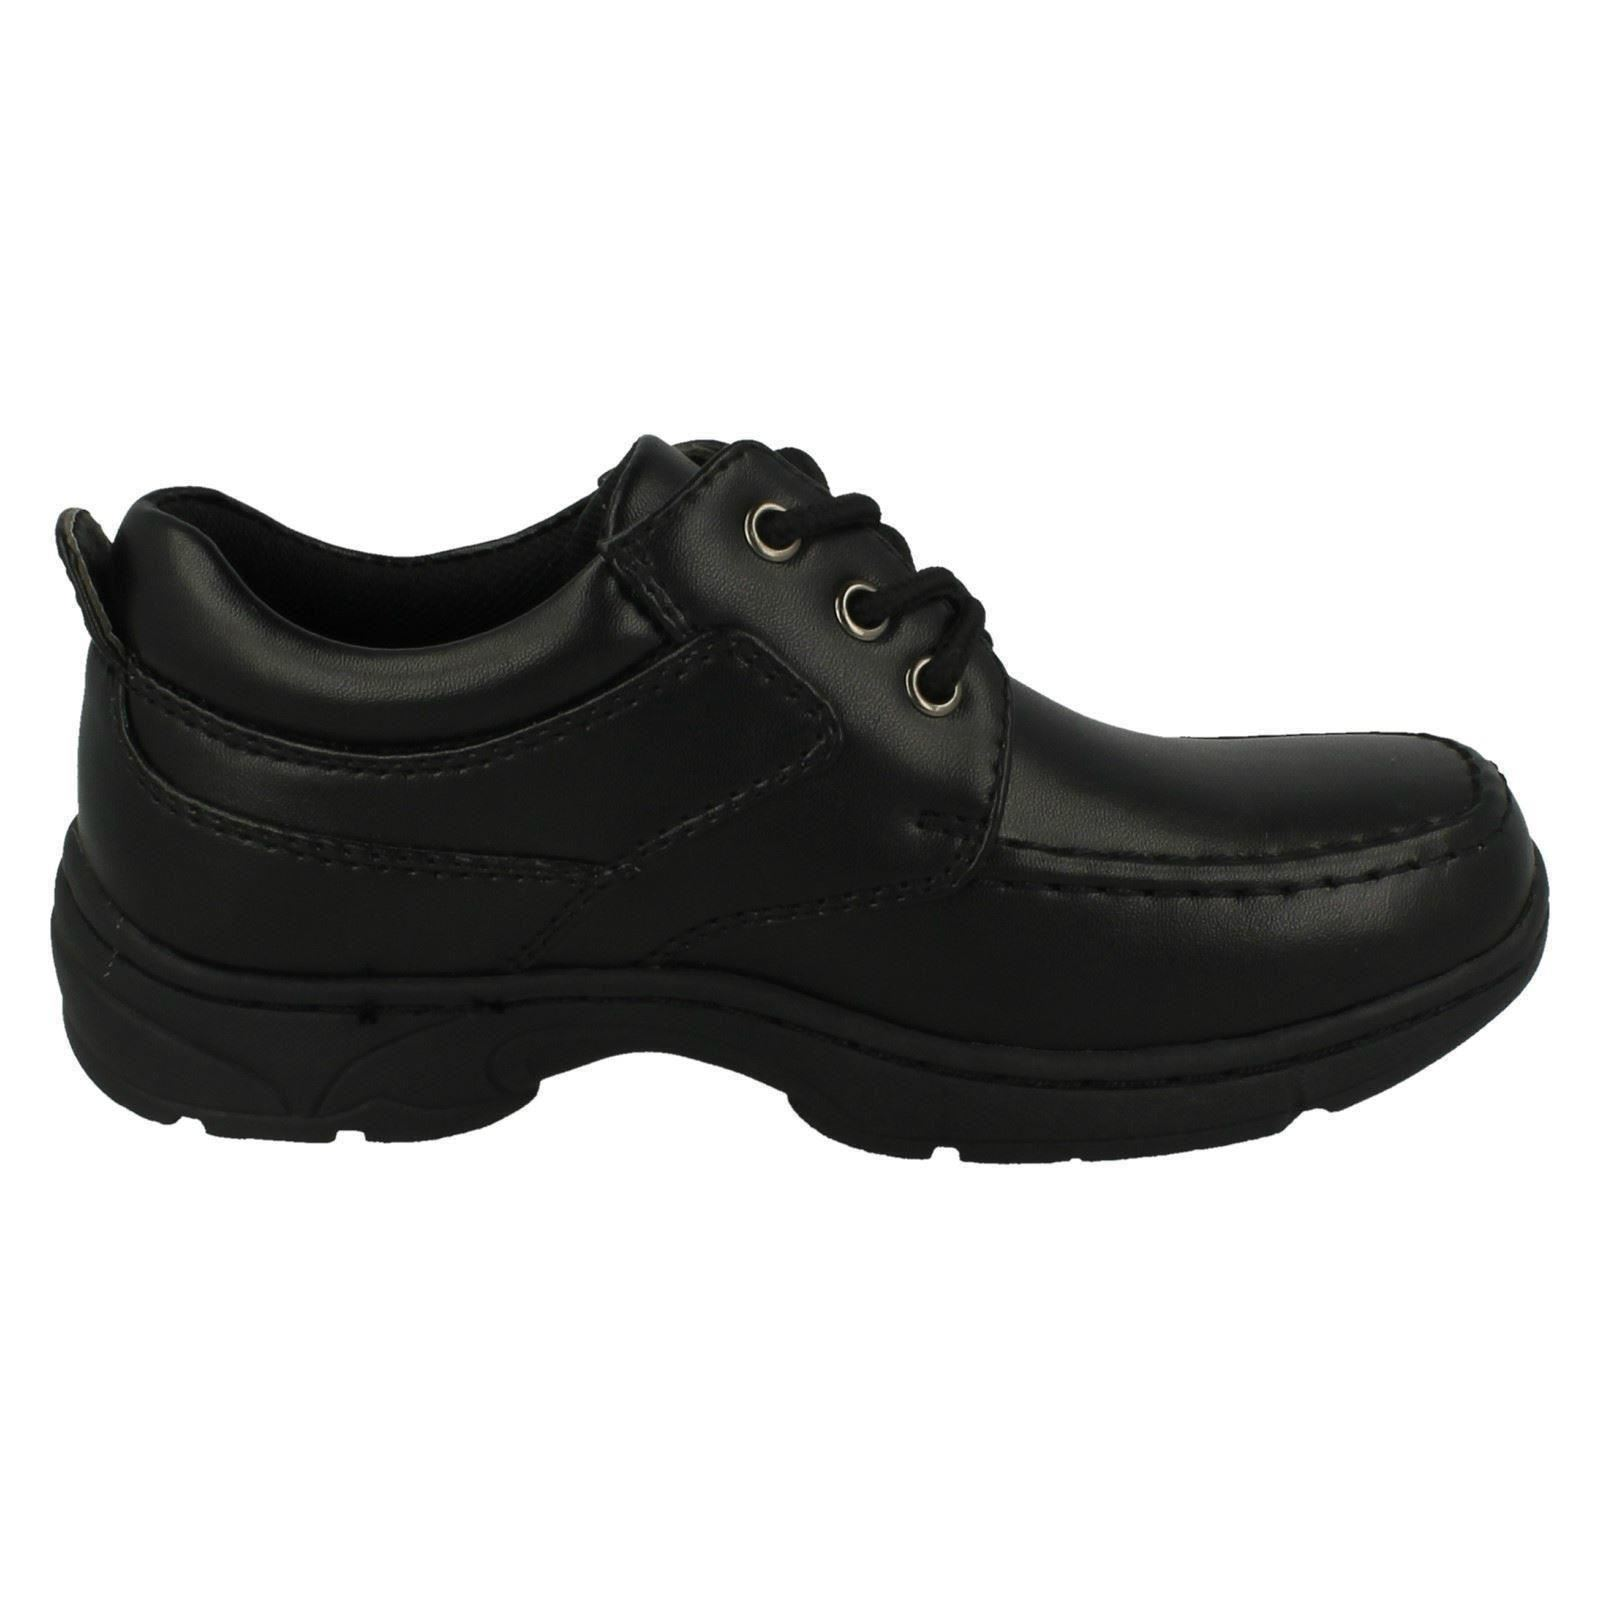 Details about  /Boys Cool For School Lace Up Smart School Shoes